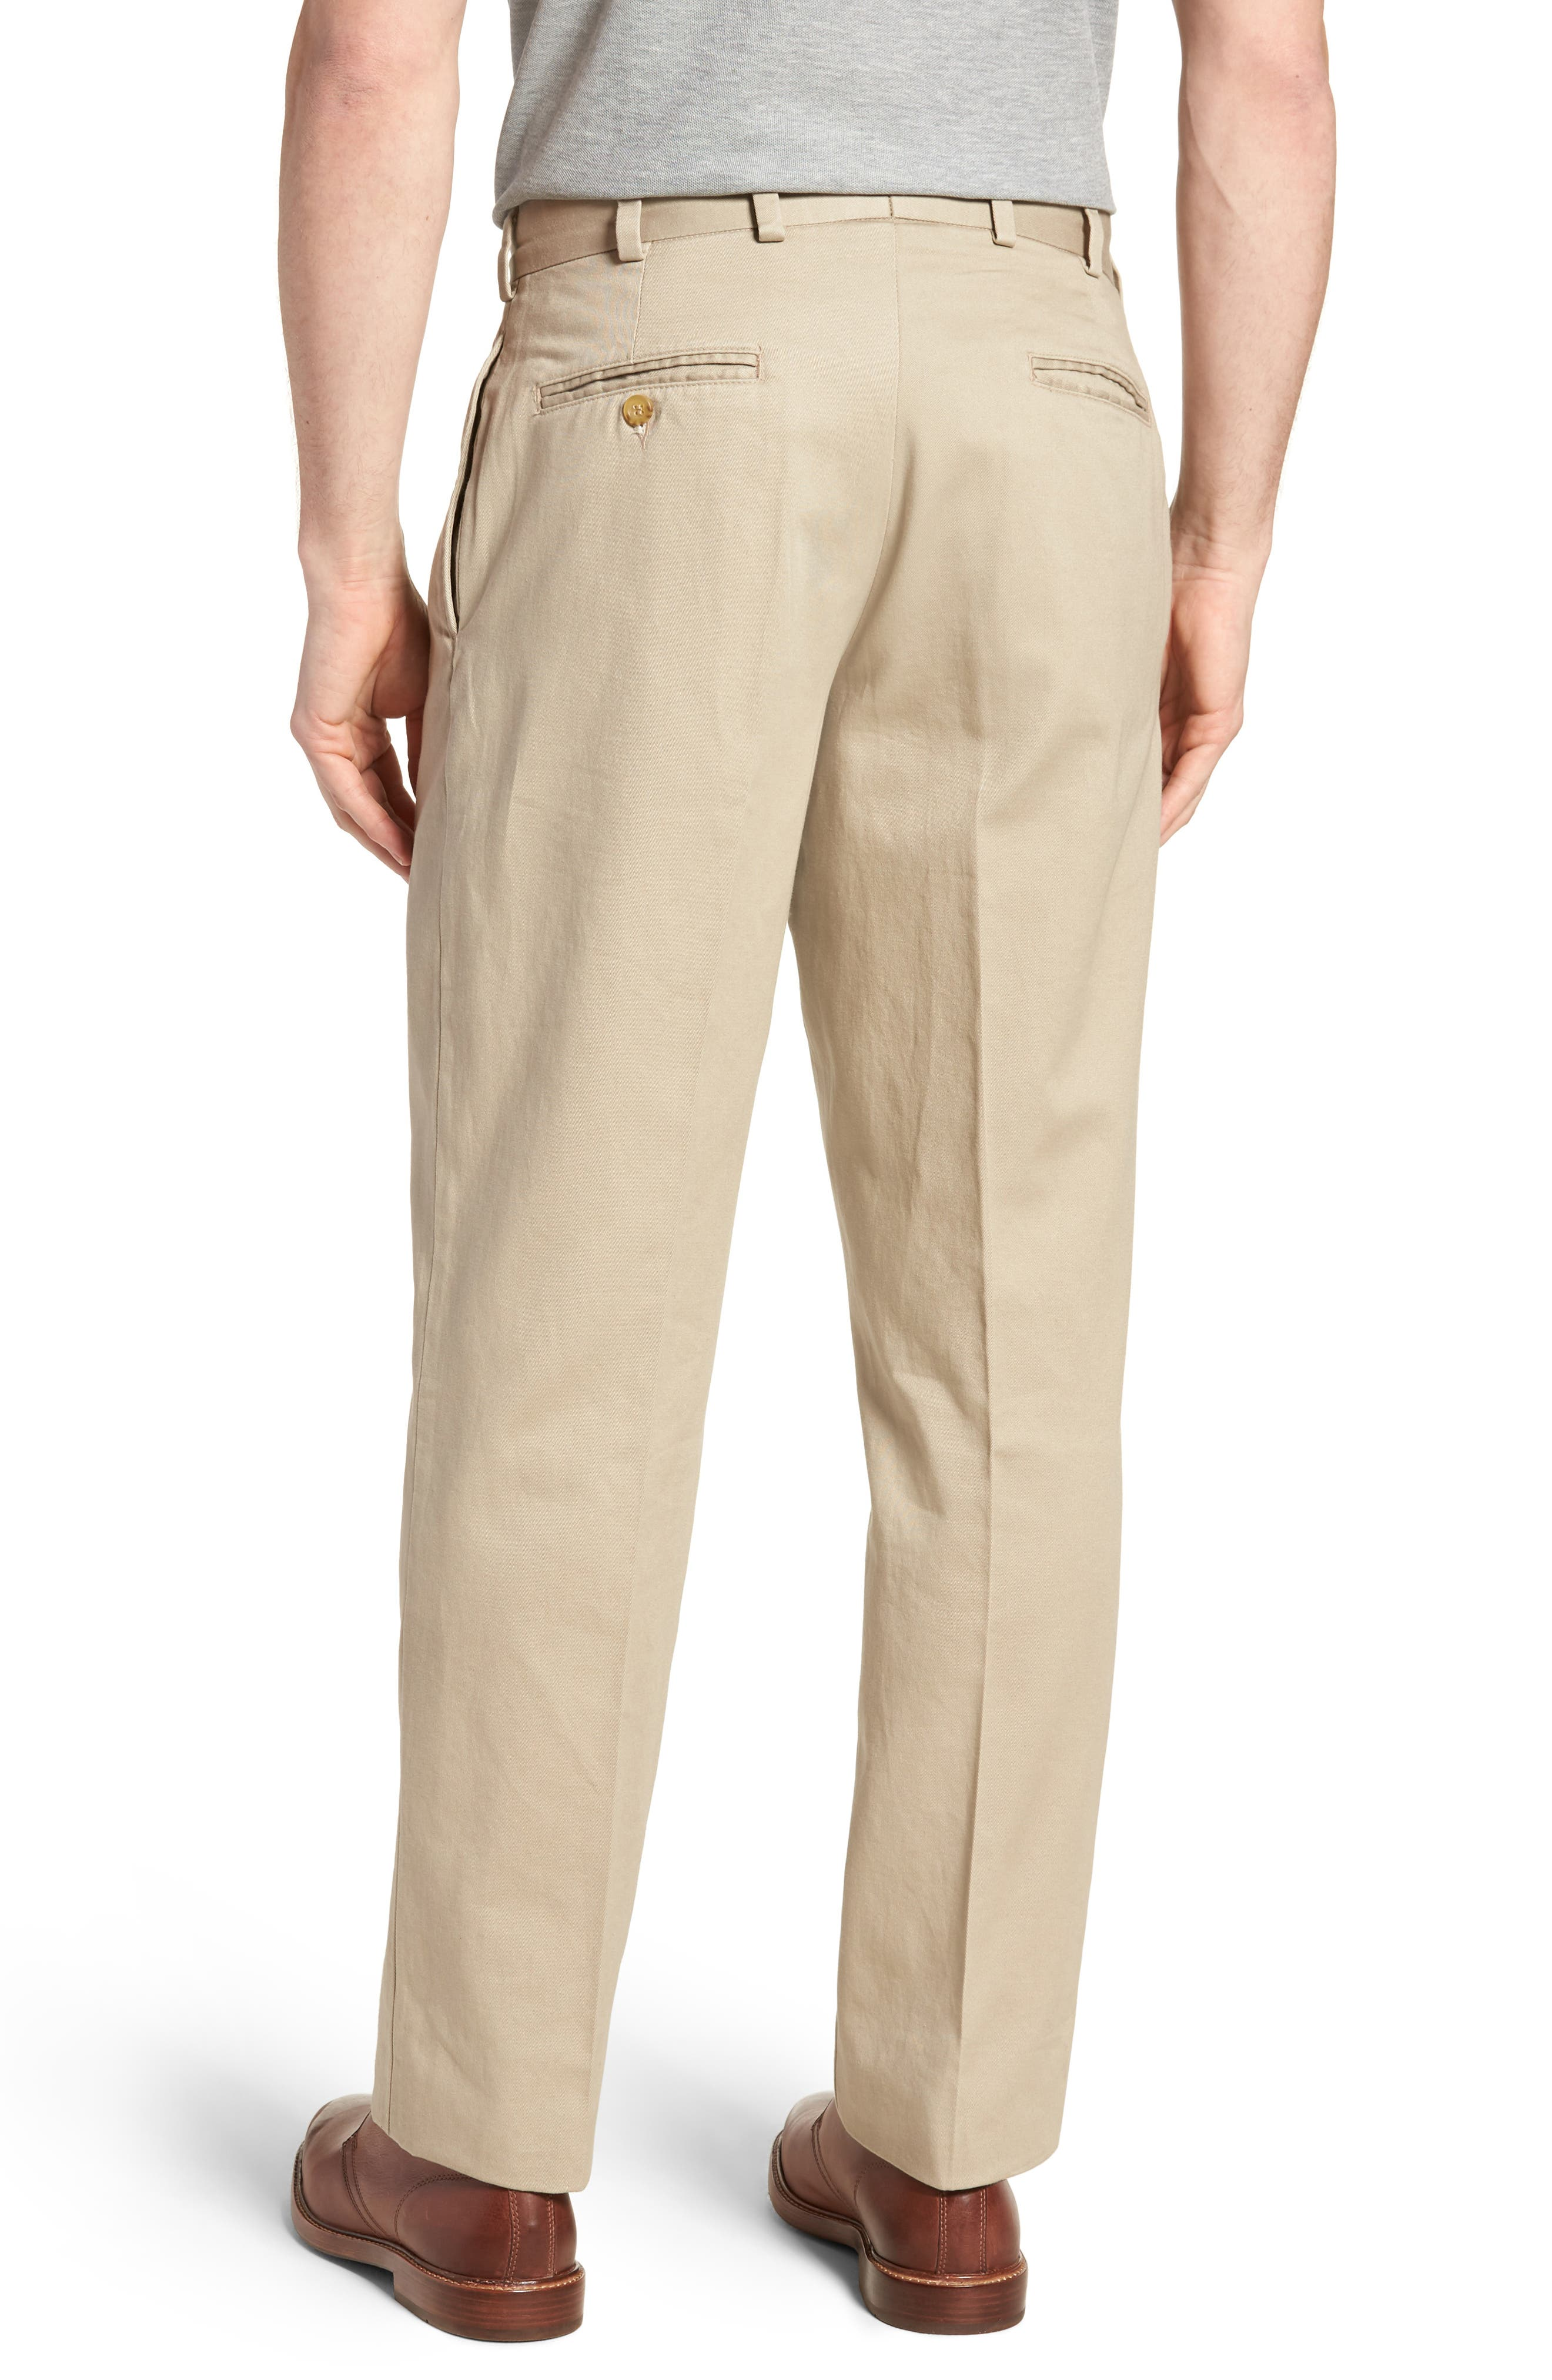 M2 Classic Fit Pleated Vintage Twill Pants,                             Alternate thumbnail 2, color,                             250